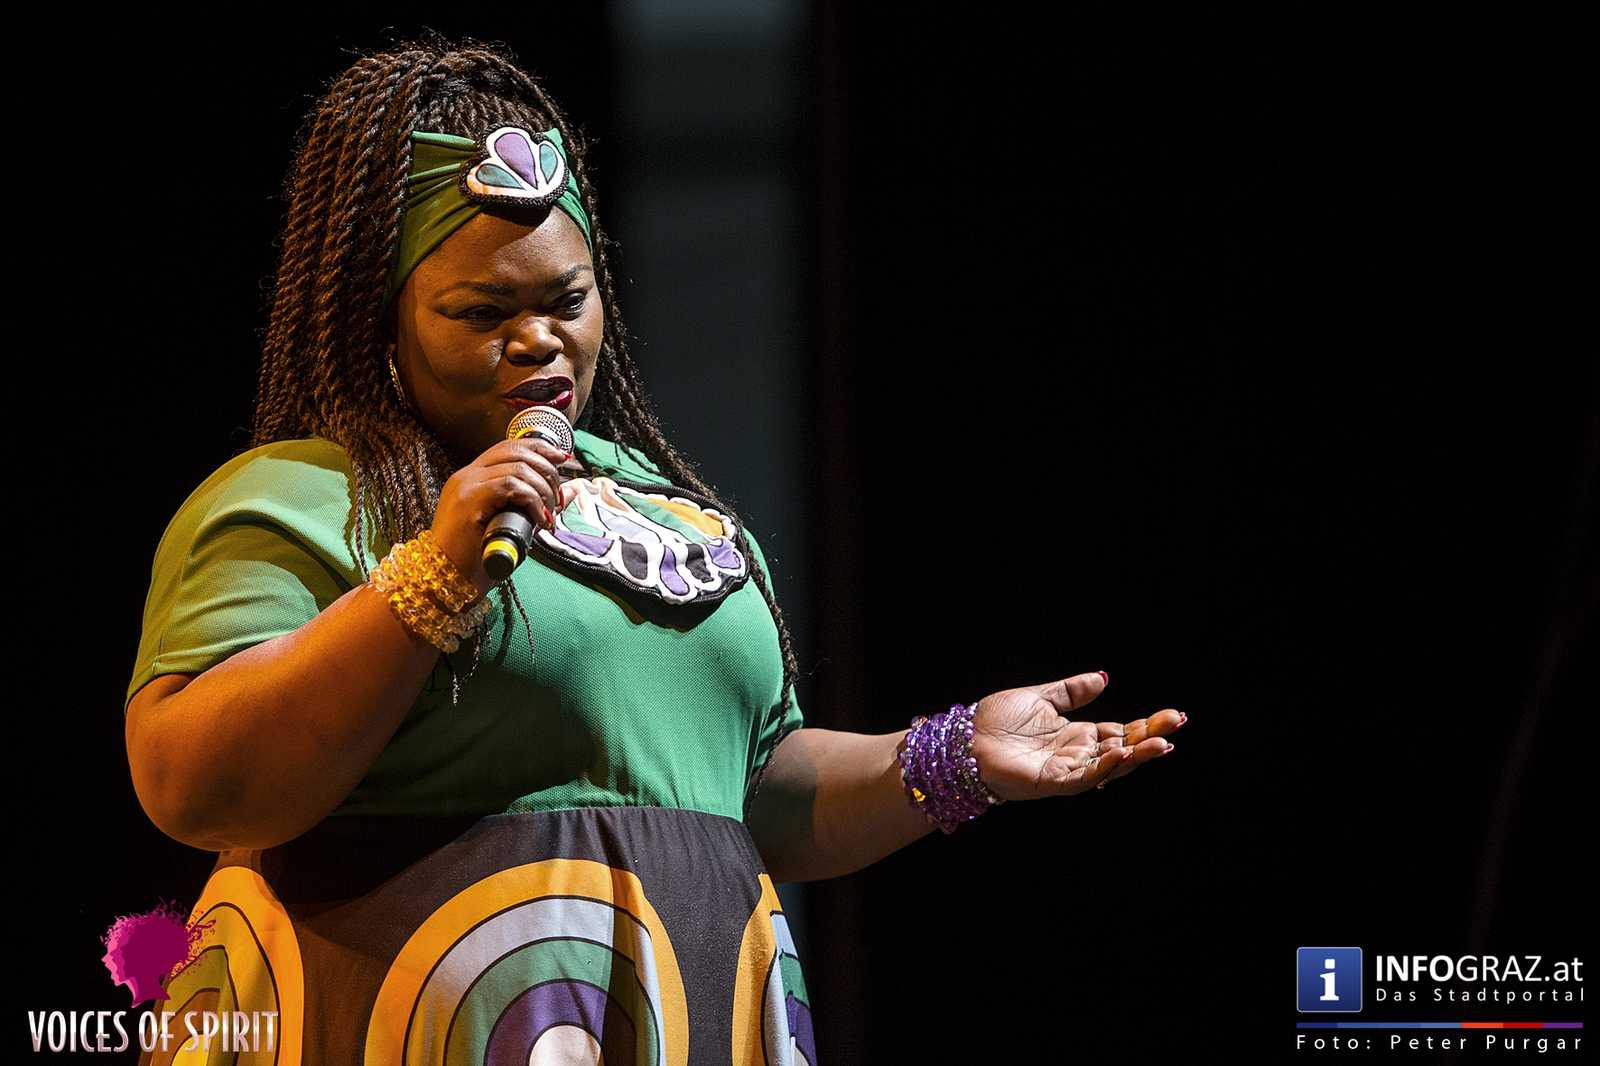 soweto gospel choir internationales chorfestival statdthalle graz voices of spirit eroeffnung festivals 2016 008